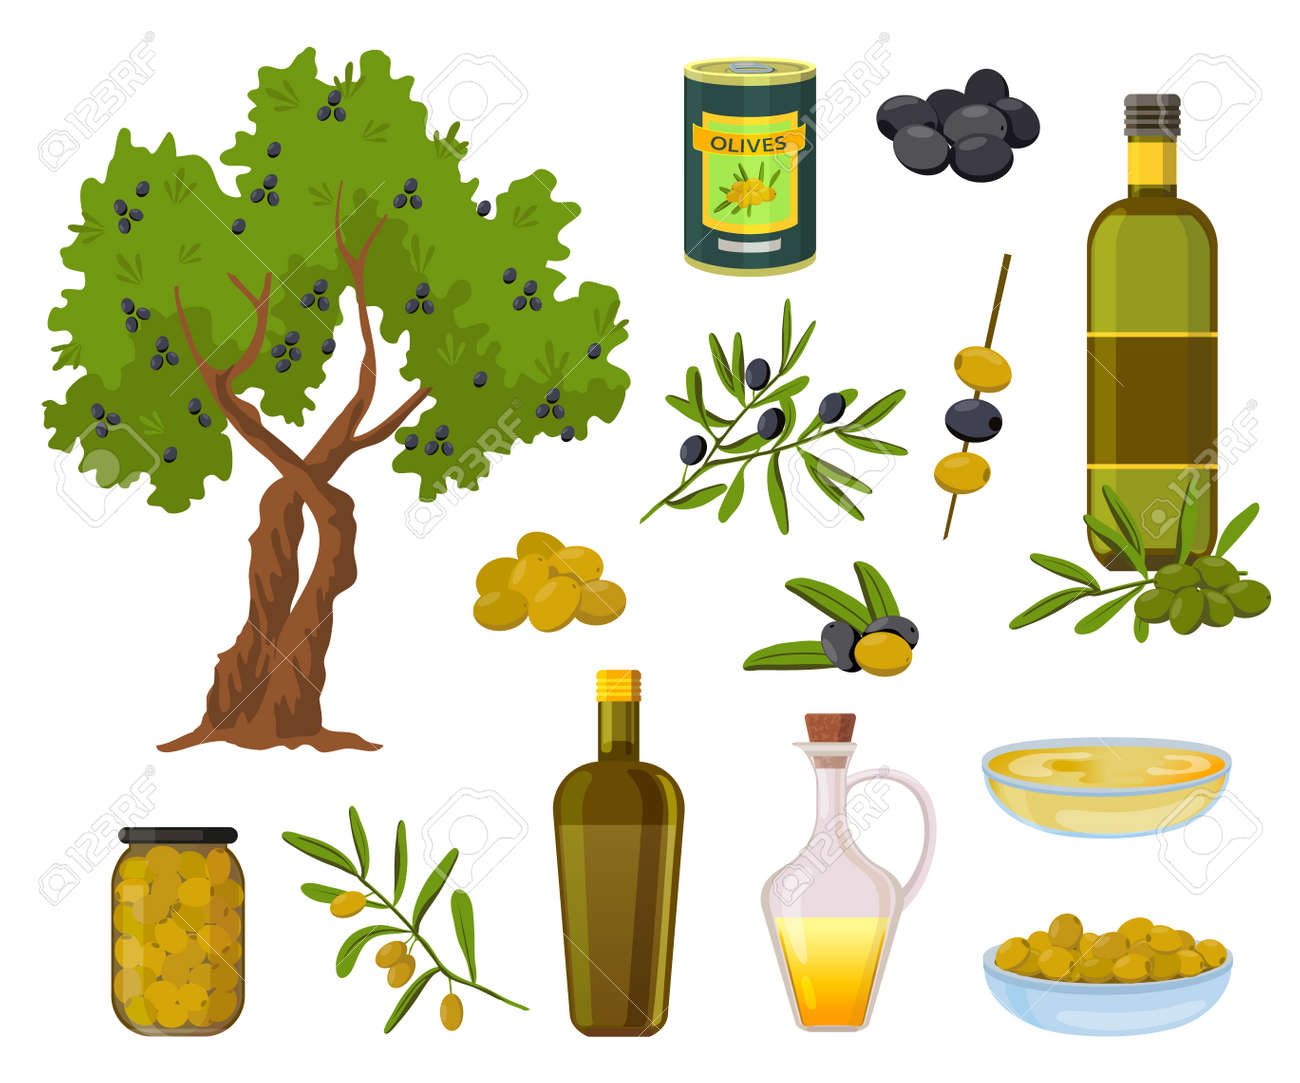 Cartoon olive products. Black and green olives in jars, healthy virgin oil in bottles and bowl. Olive tree and branch with leaves vector set - 171877537